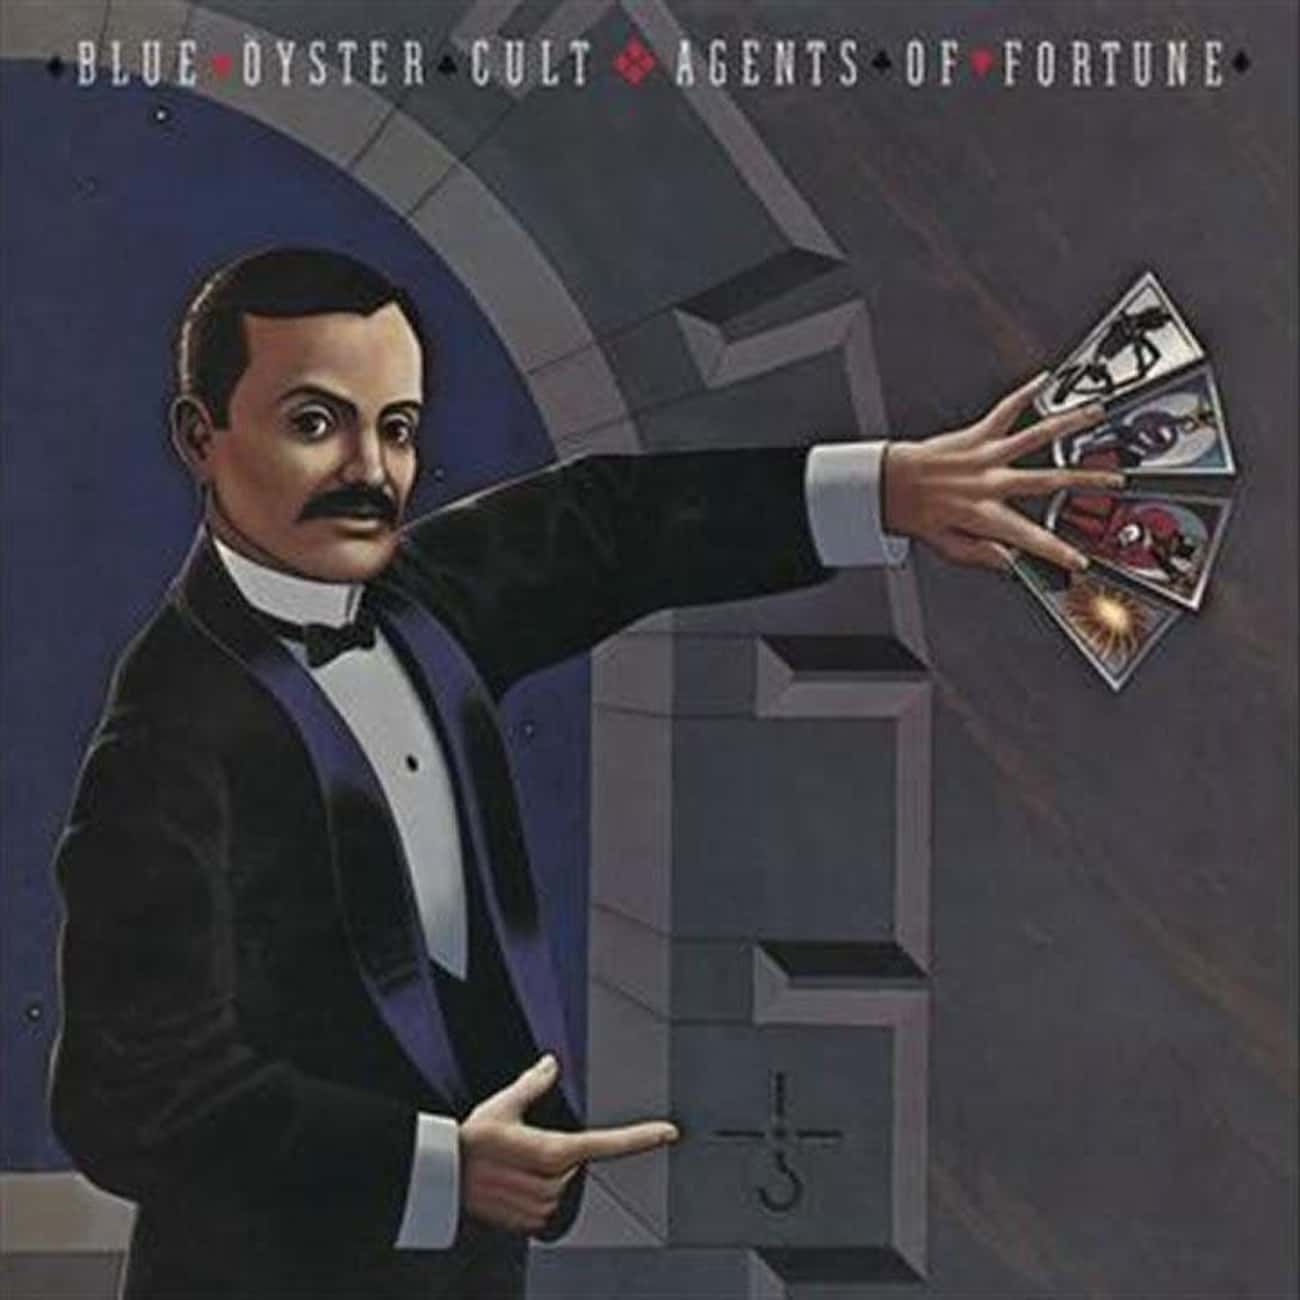 Agents Of Fortune is listed (or ranked) 1 on the list The Best Blue Öyster Cult Albums, Ranked